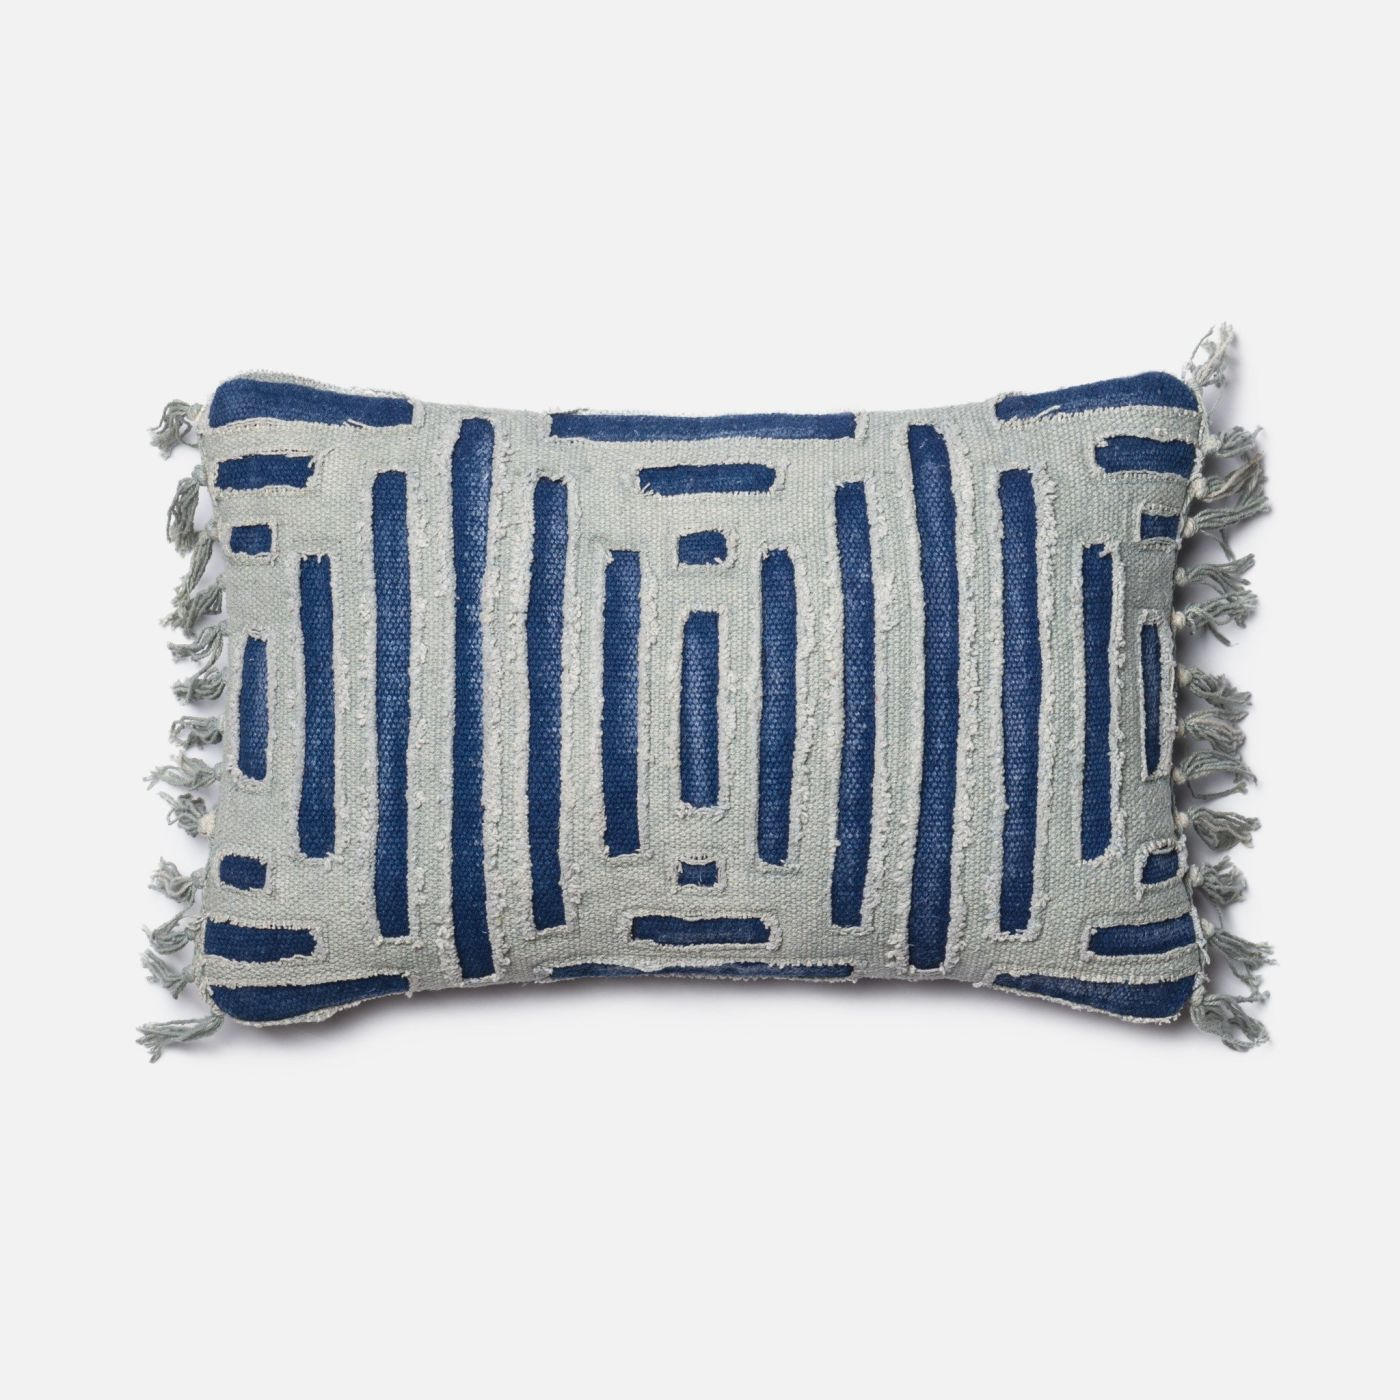 Loloi Rugs Loloi Blue / Grey Decorative Throw Pillow (P0405) DSETP0405BBGYPIL5. Only $139.00 at ...